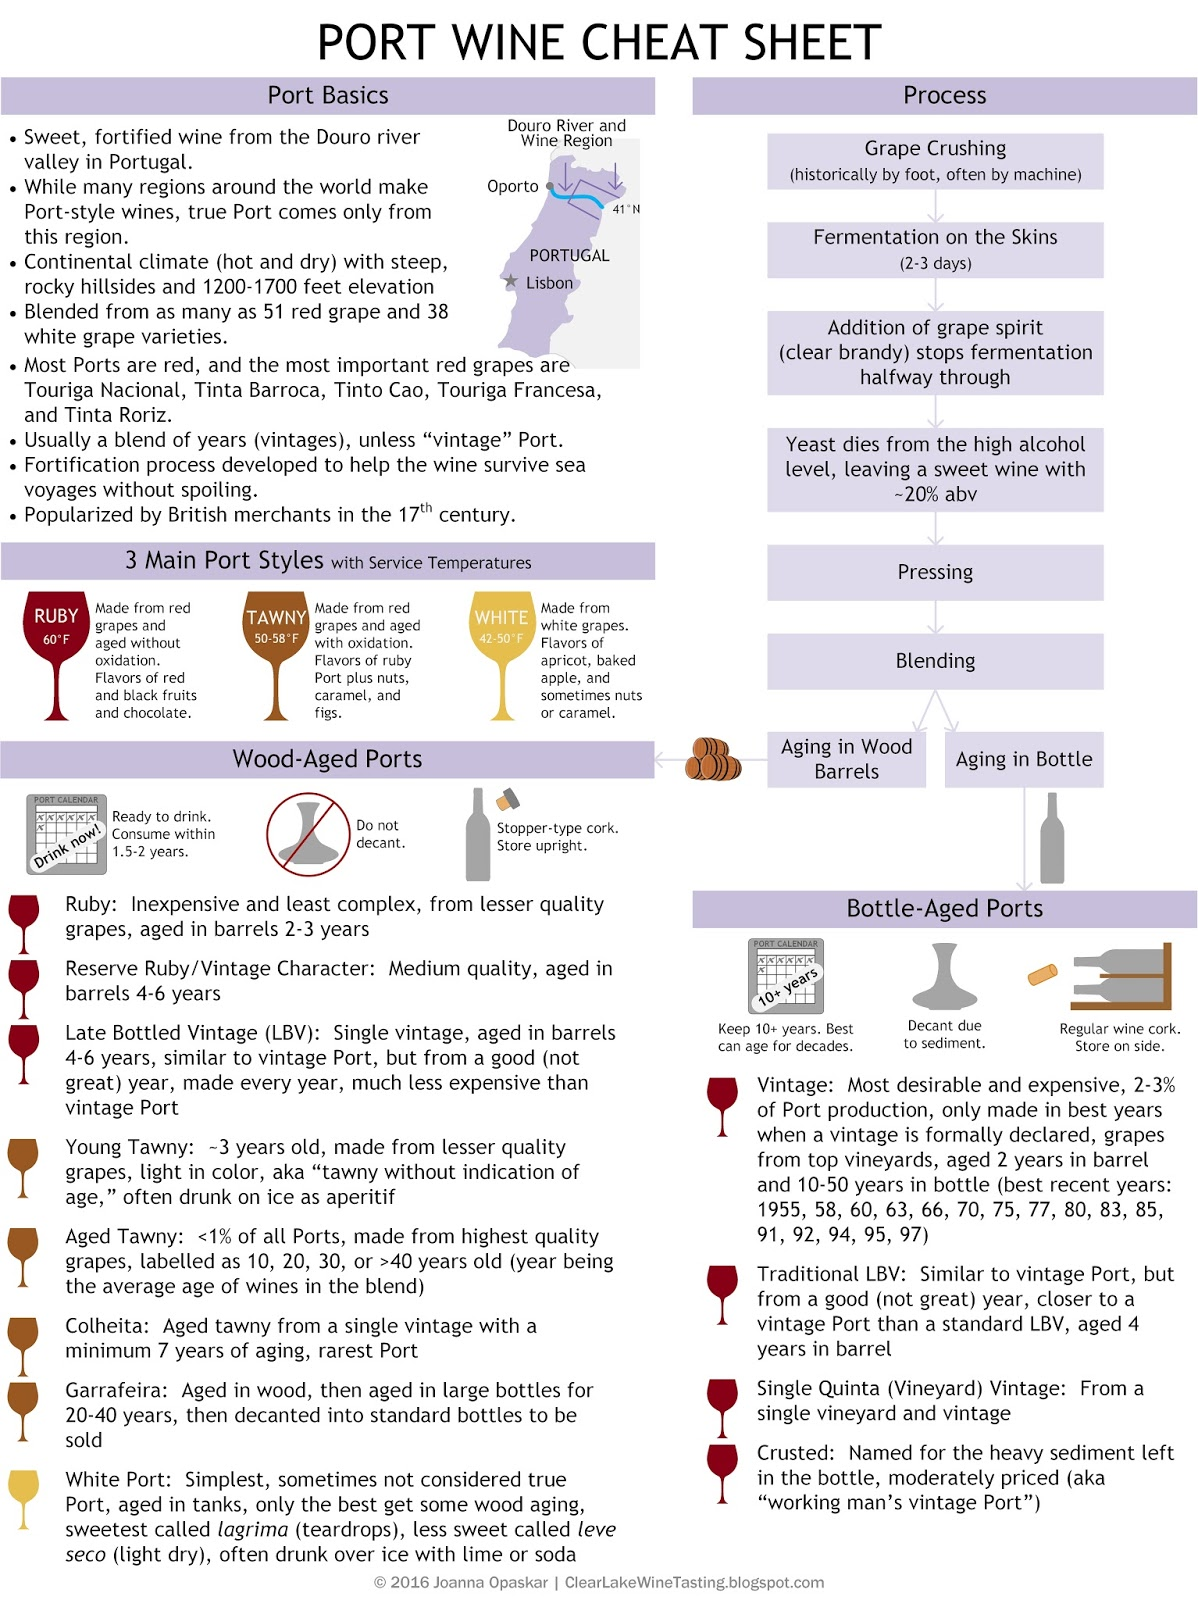 clear lake wine tasting  wine infographic  port wine cheat